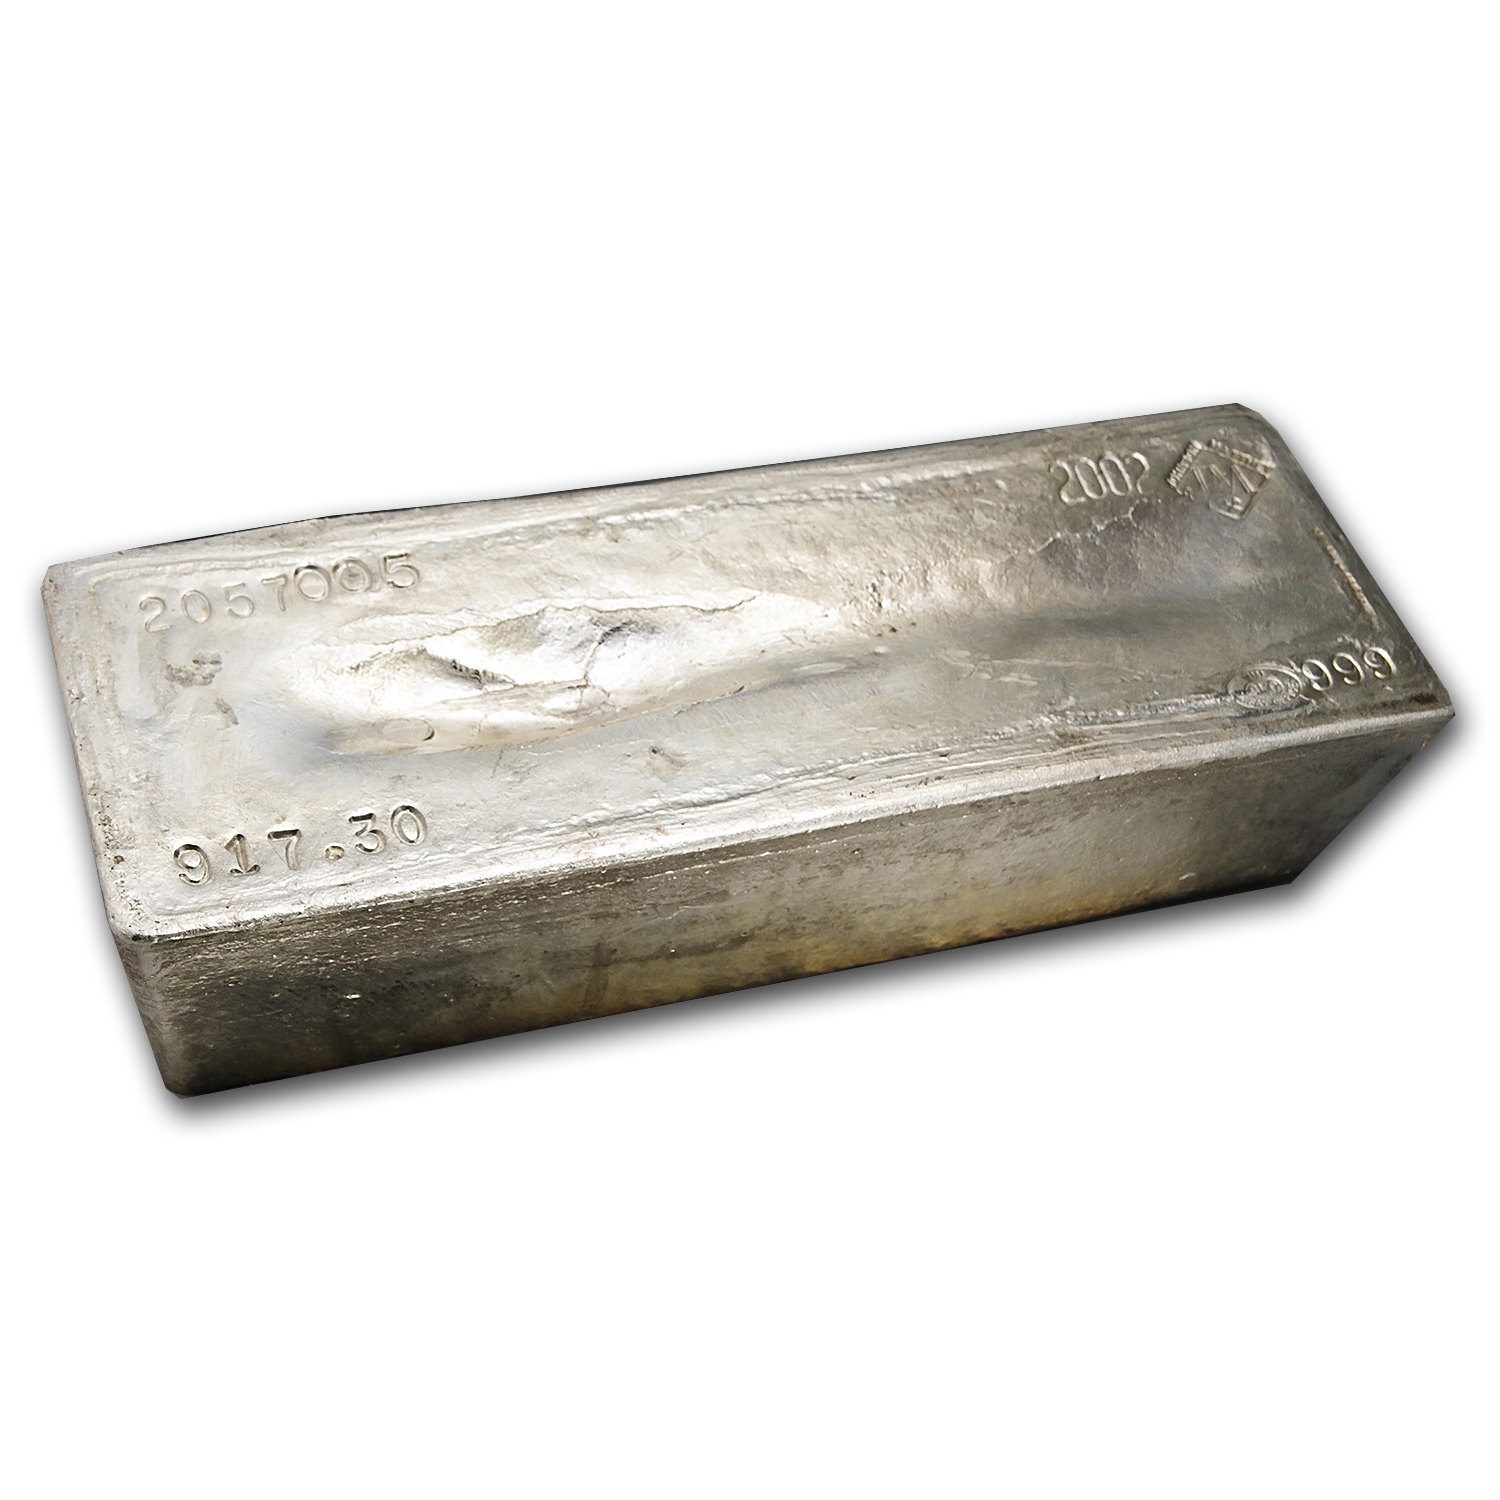 917.30 oz Silver Bar - Johnson Matthey